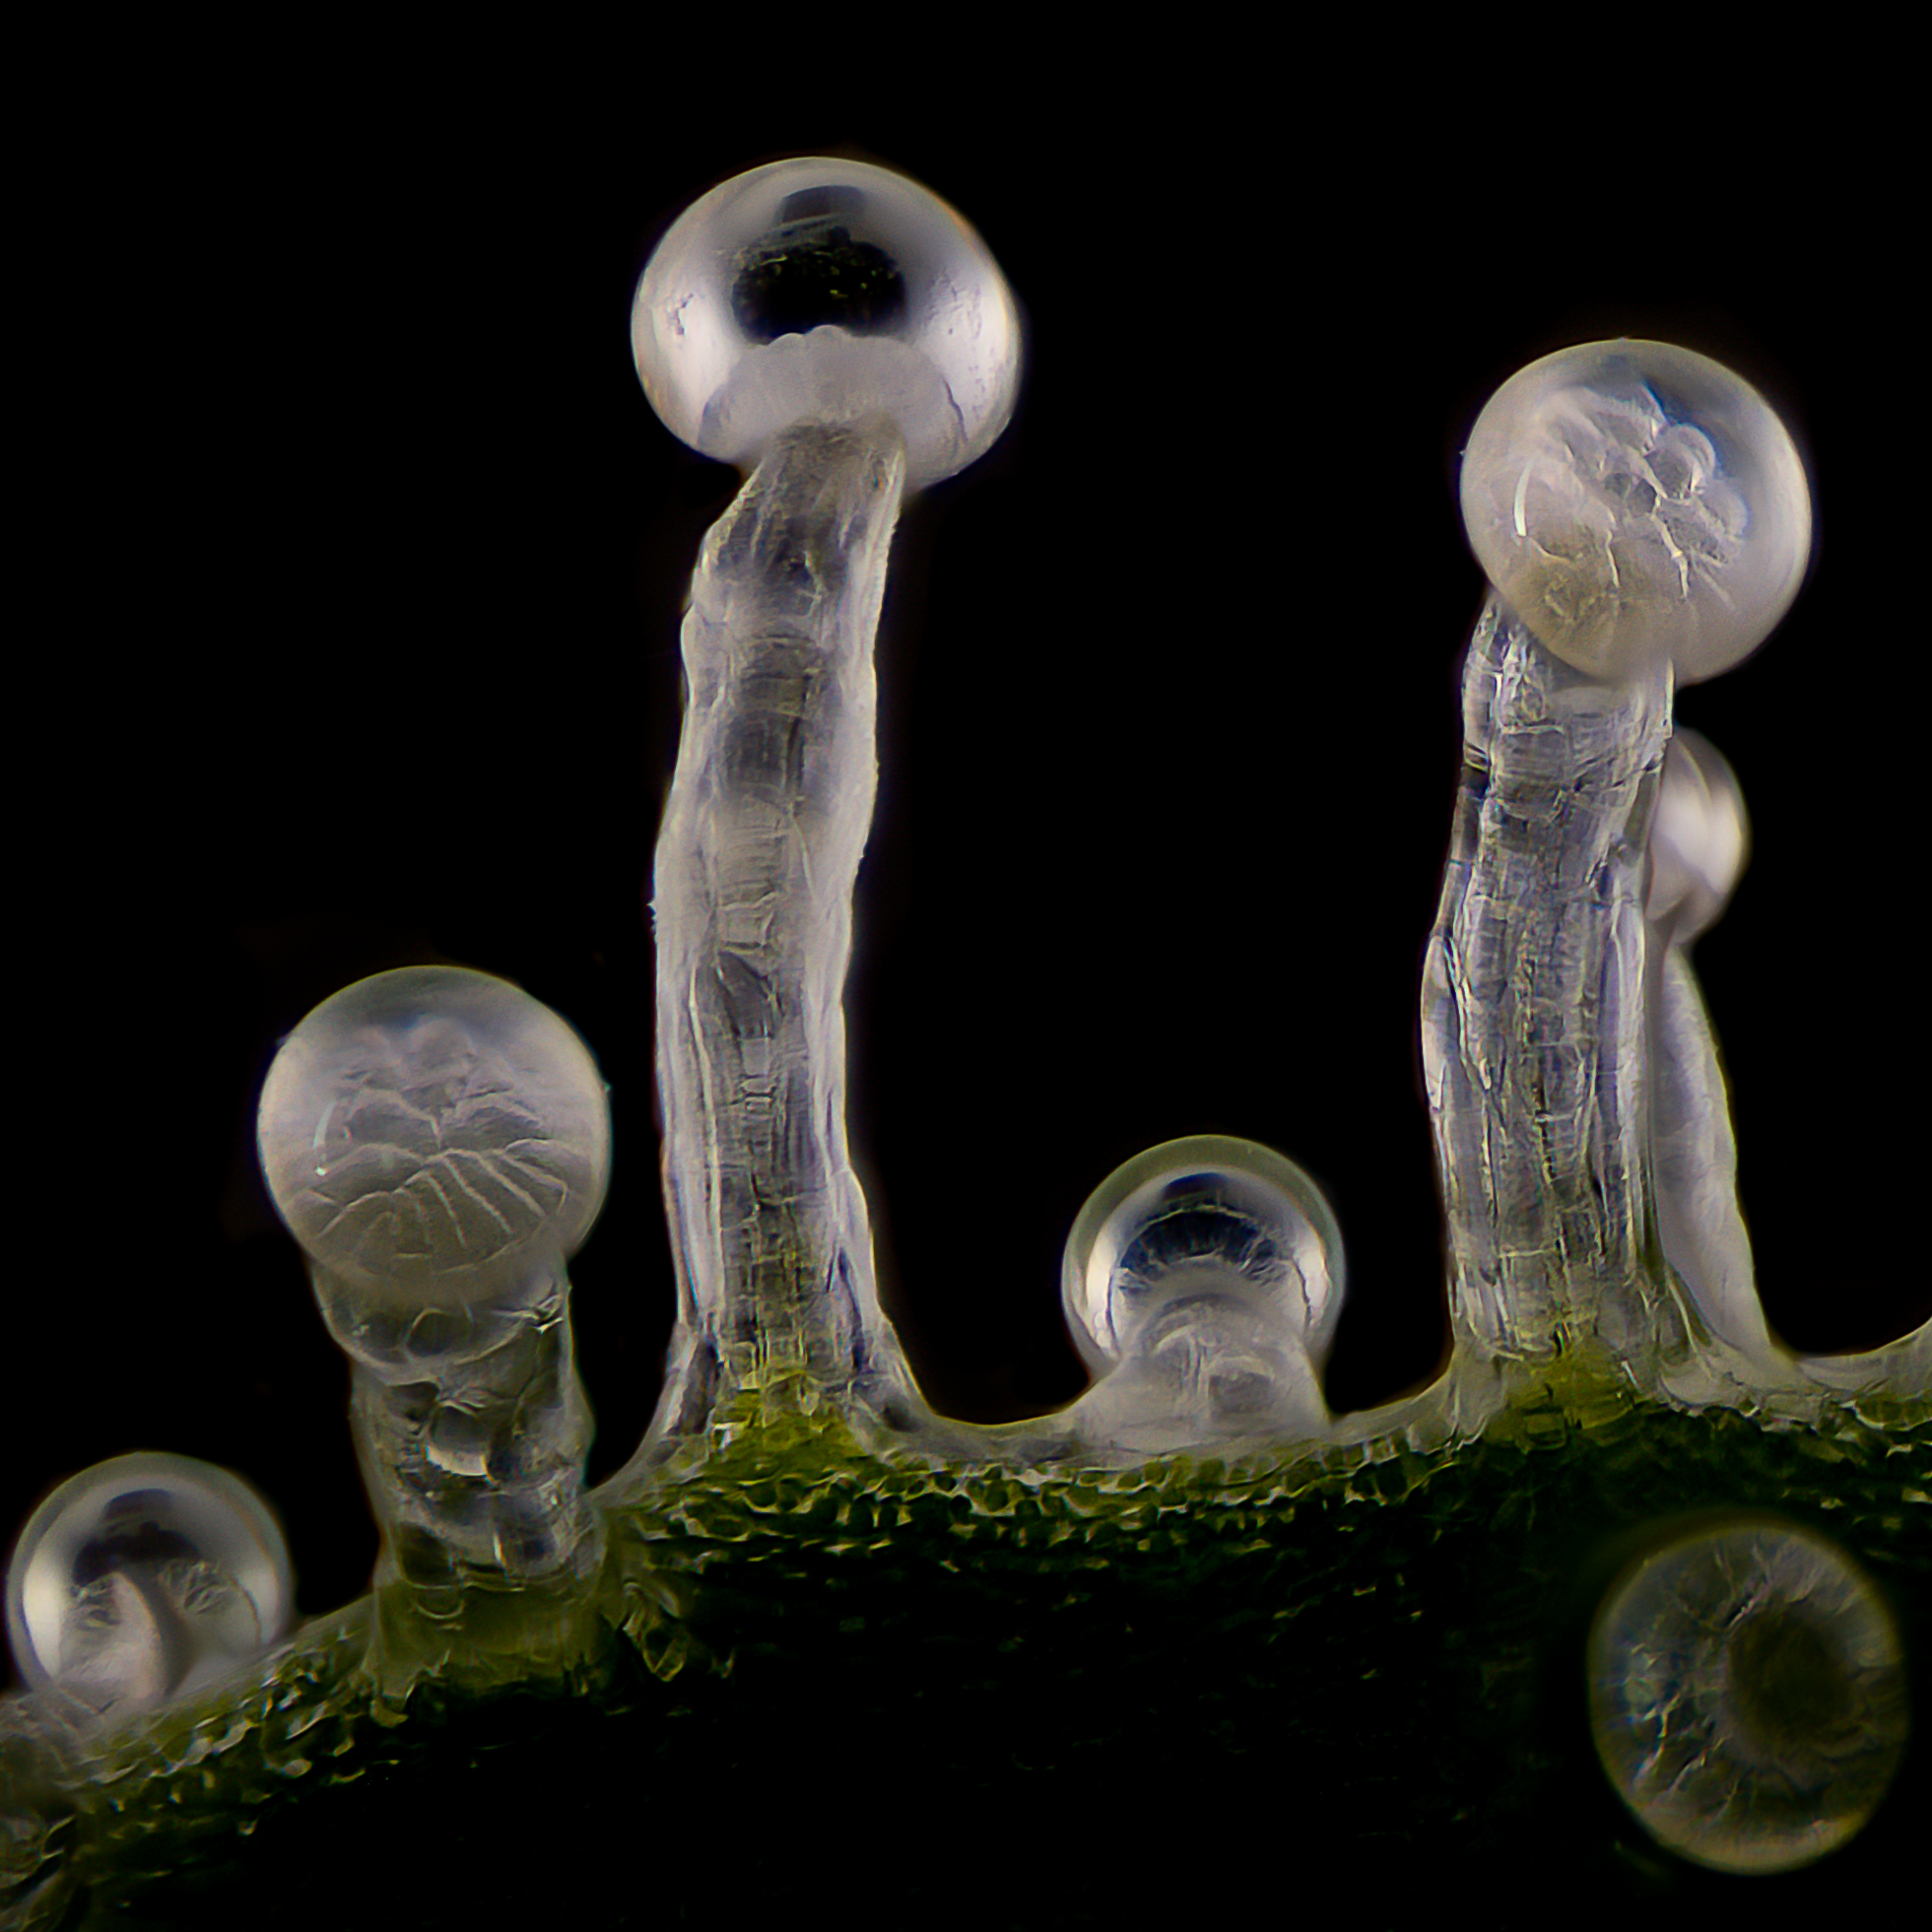 Trichomes in later stage of flowering